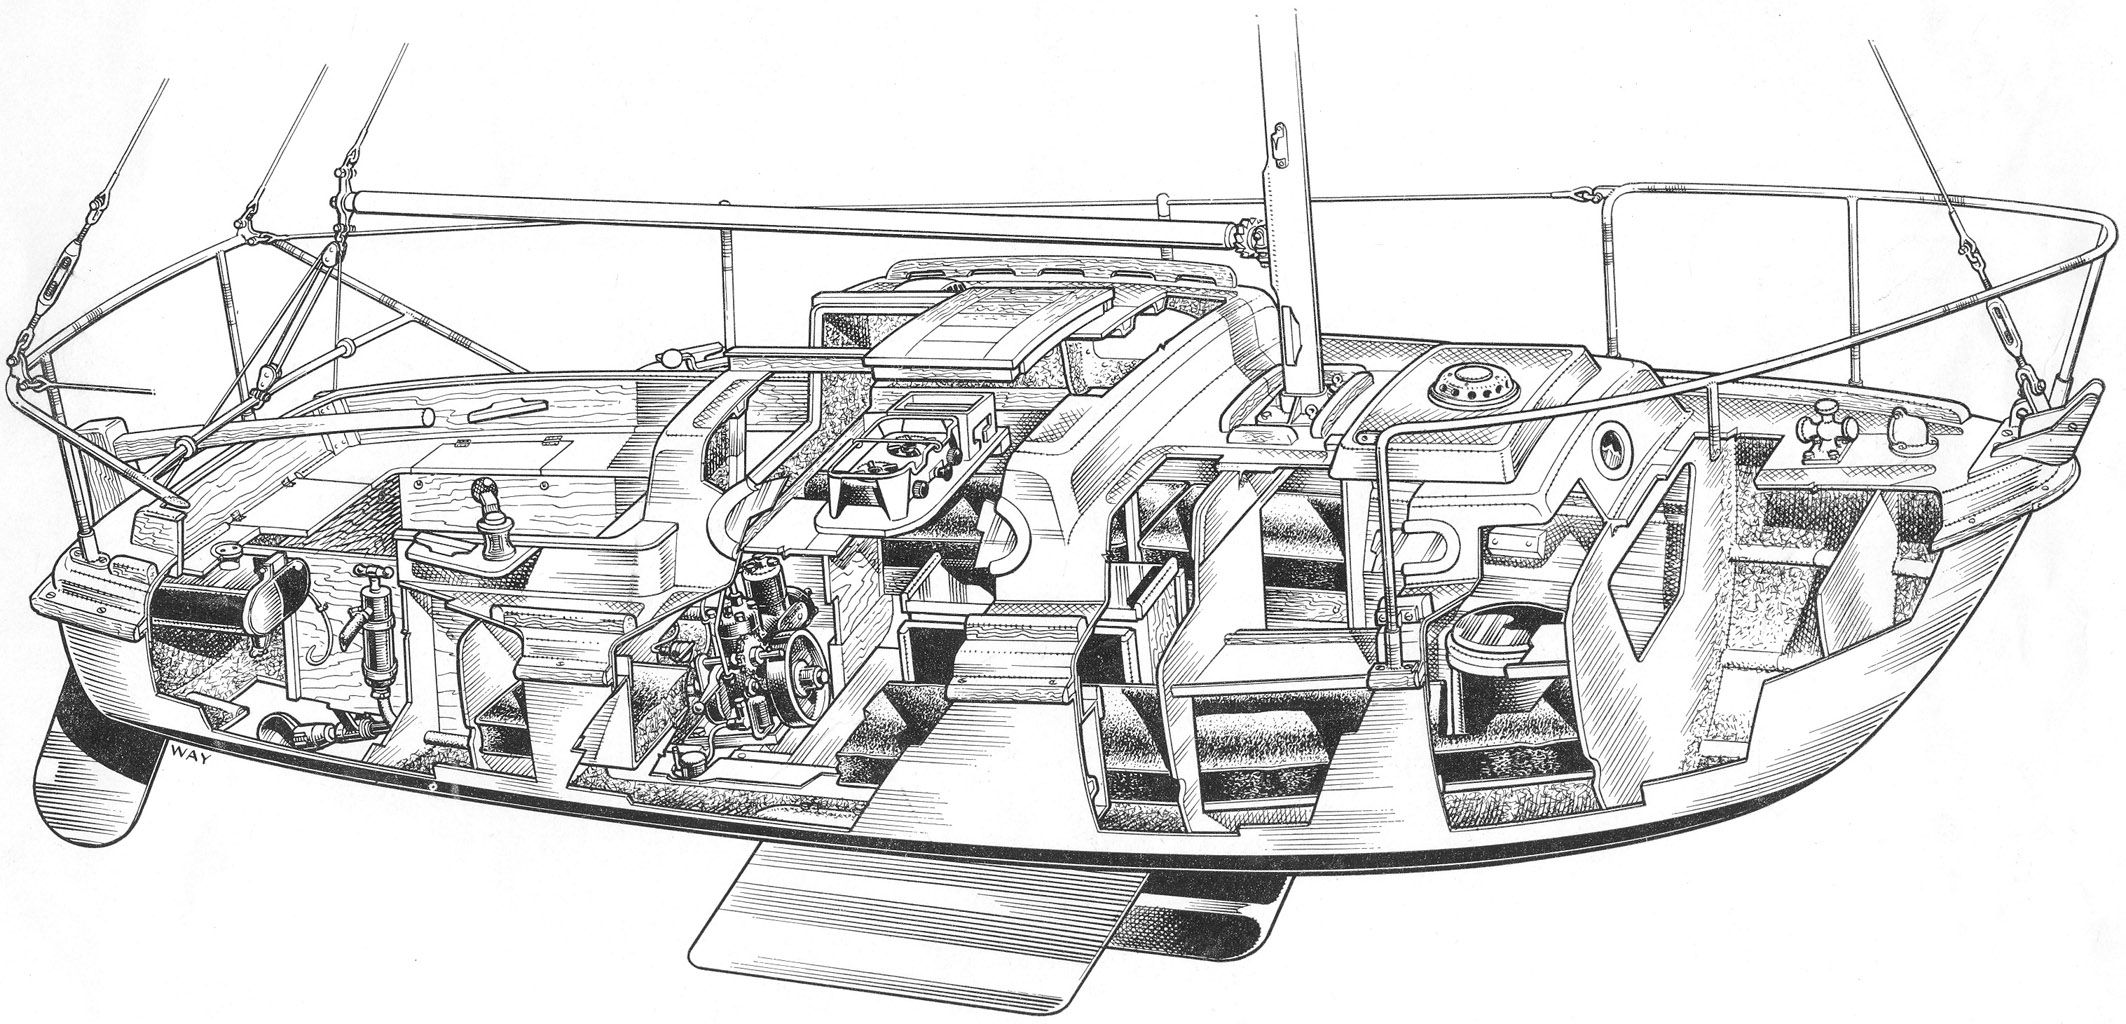 Sailboat Cutaway Diagram